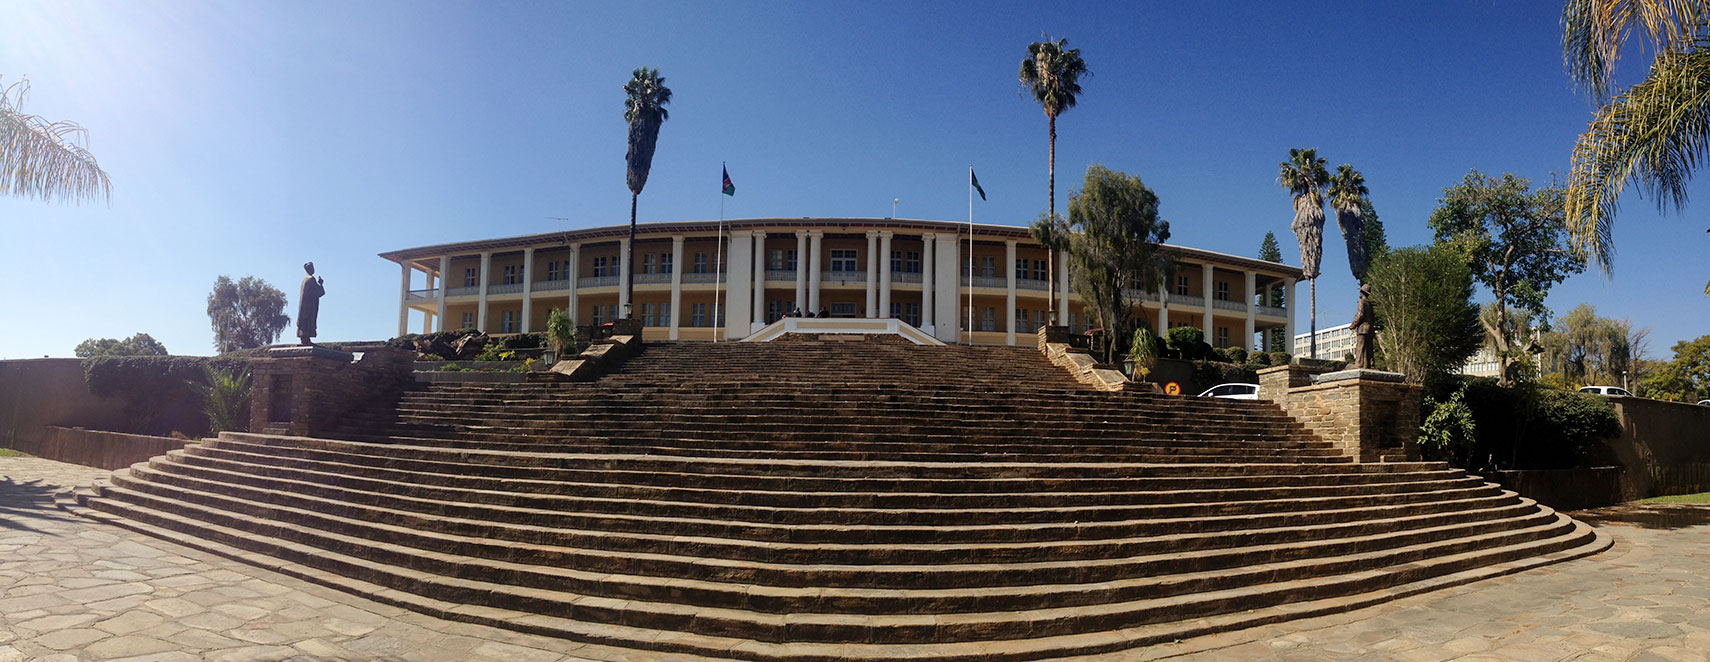 Tintenpalast, Namibia's parliament in Windhoek